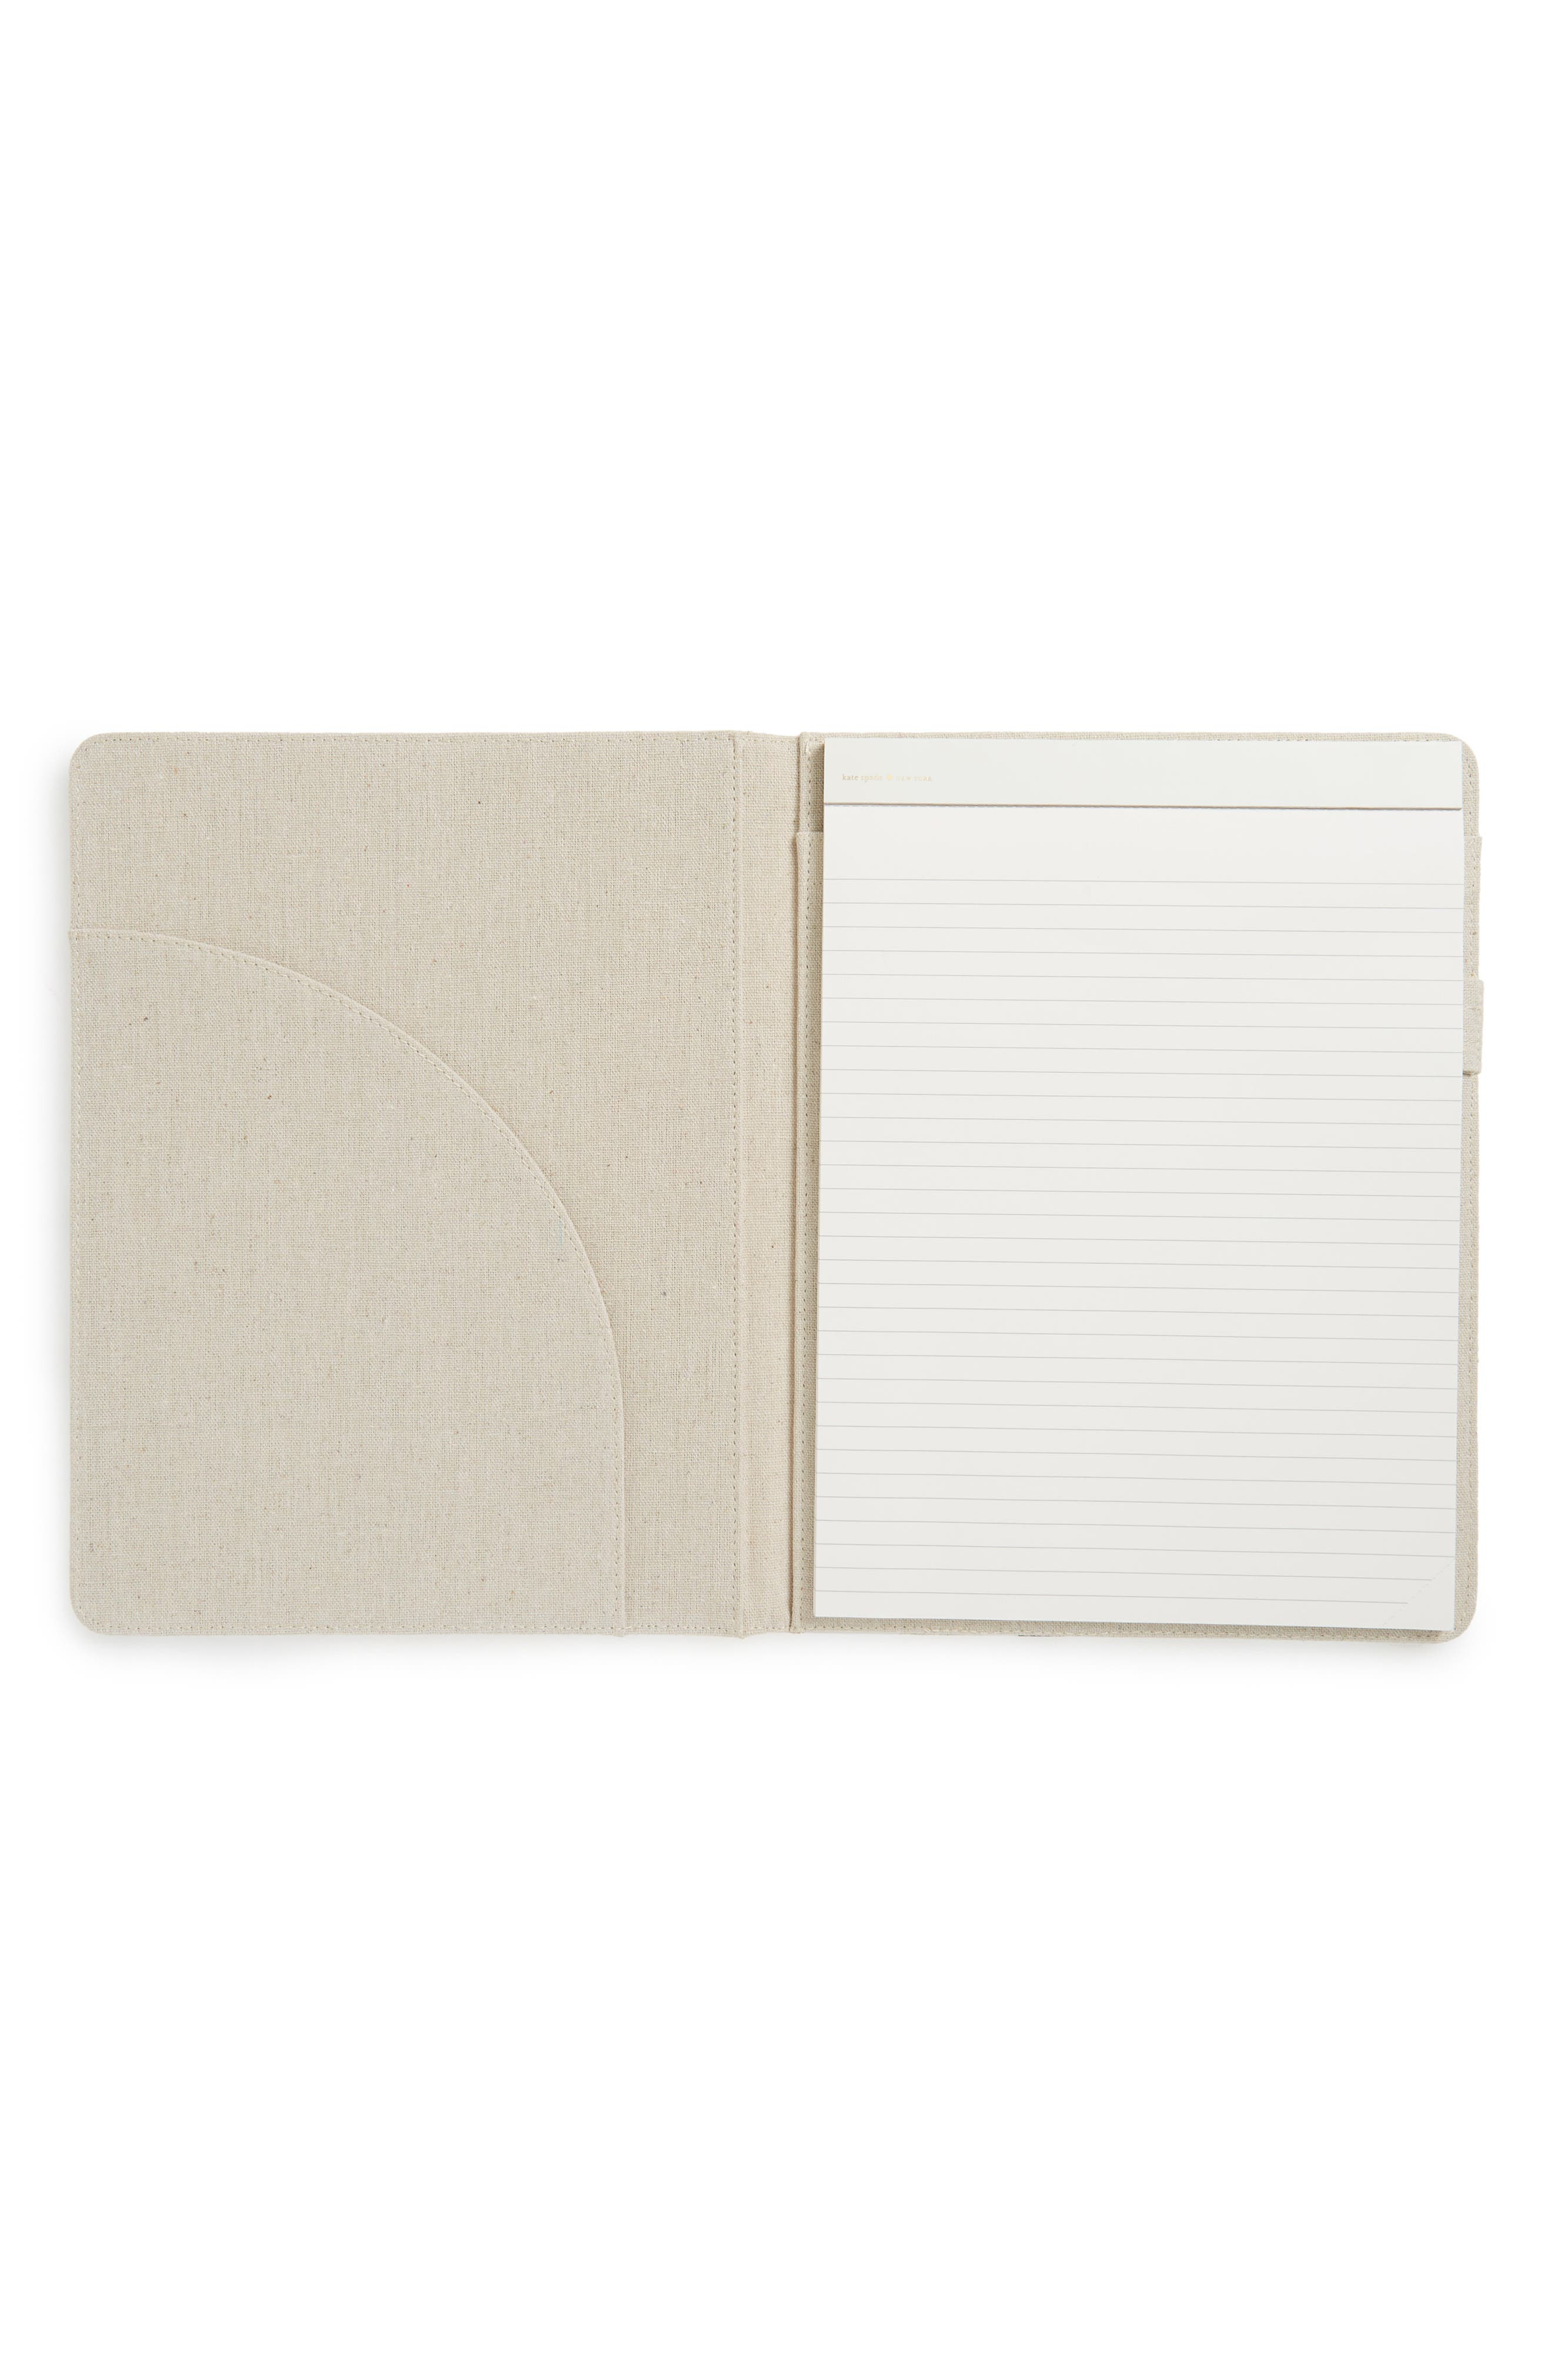 faye floral notepad folio,                             Alternate thumbnail 2, color,